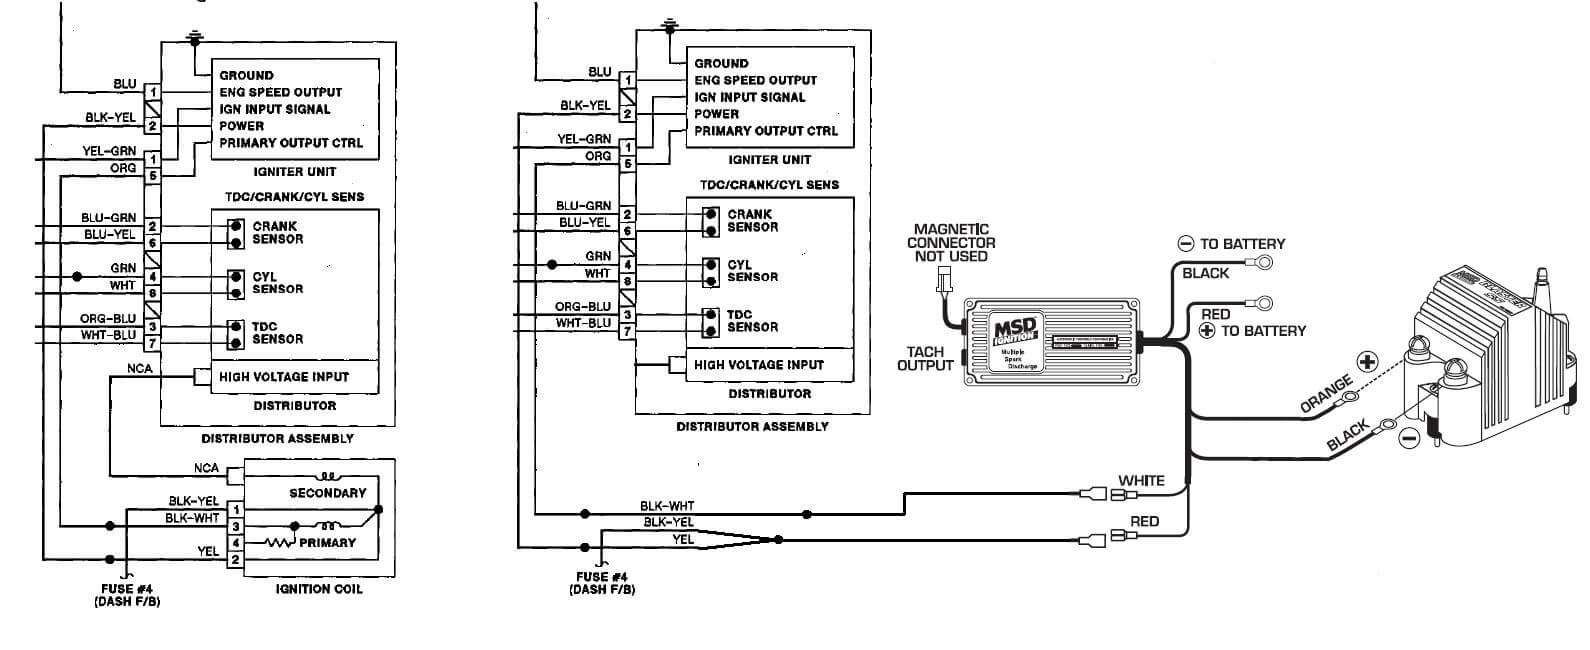 Msd 7al-2 Wiring Diagram 7220 on